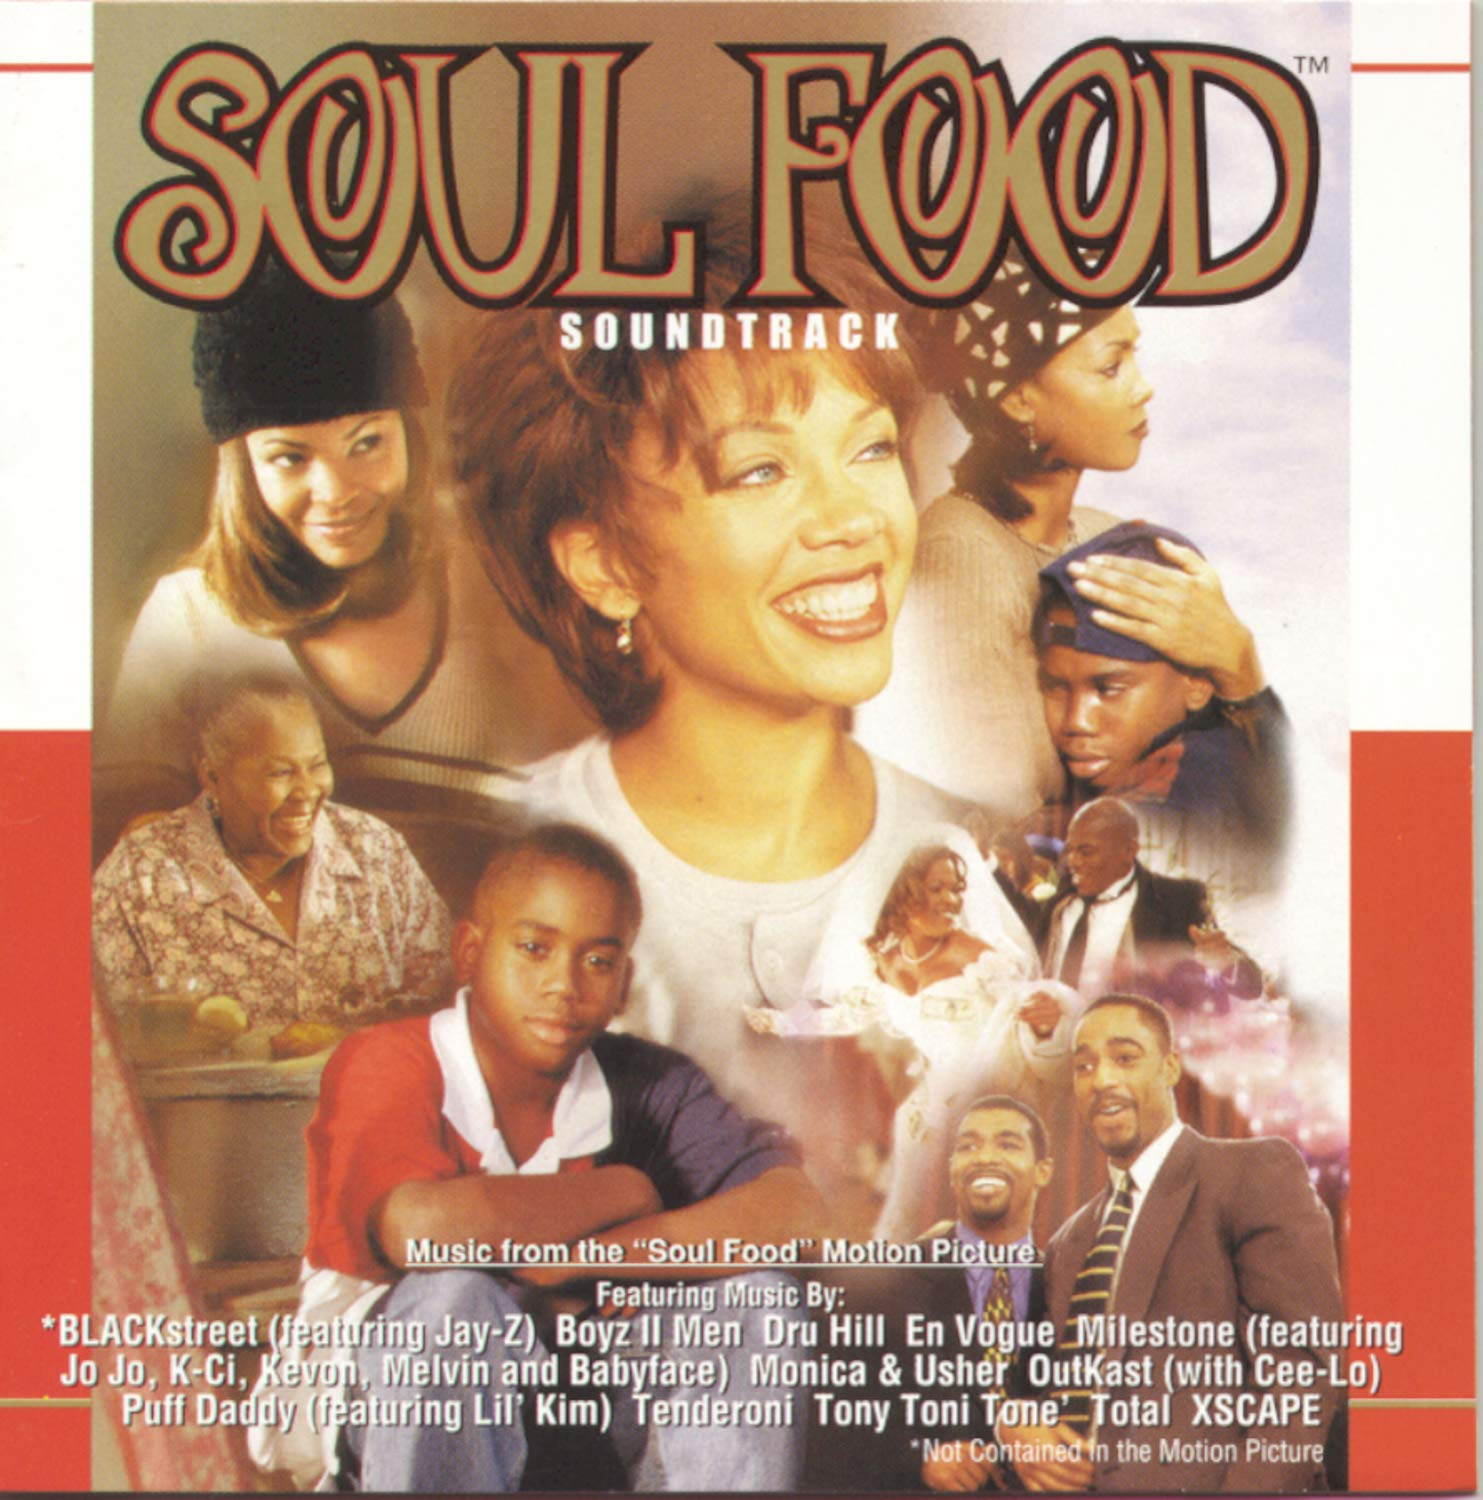 Soul Food: Soundtrack - Music From The